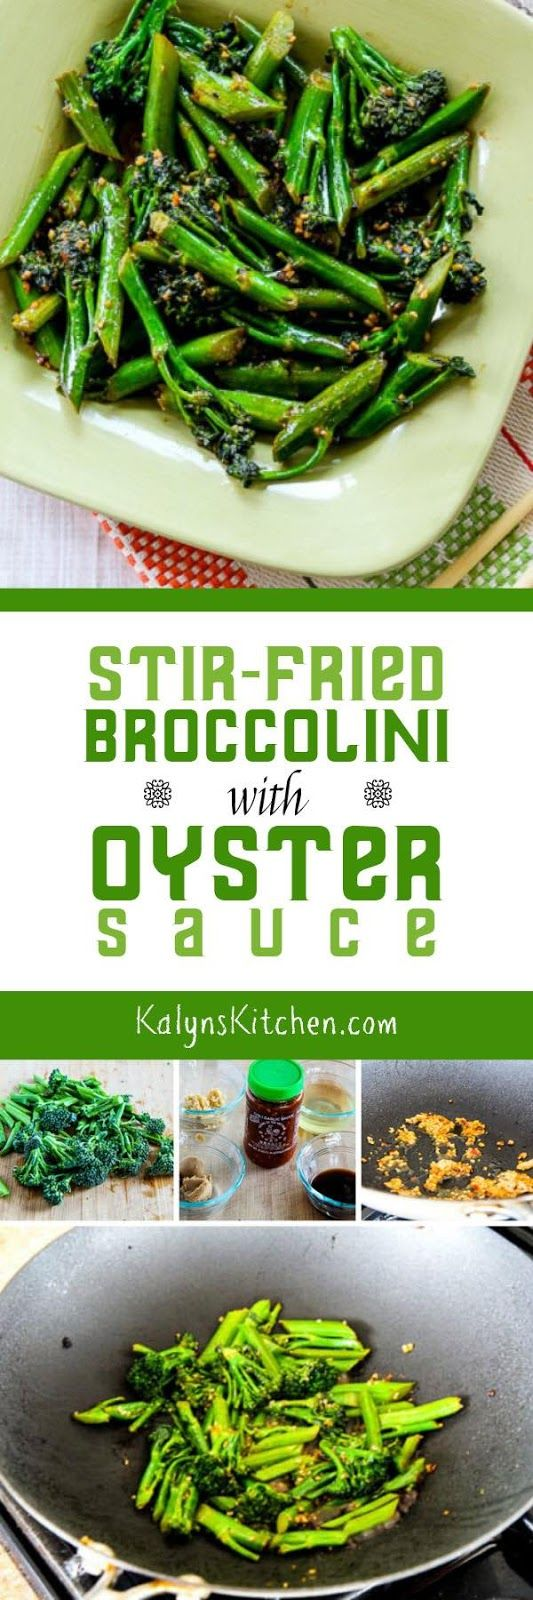 I think Broccolini deserves more love, and this Stir-Fried Broccolini with Oyster Sauce is a delicious and easy way to cook it. And this tasty veggie side dish is low-carb, dairy-free, and South Beach Diet friendly. [found on KalynsKitchen.com]